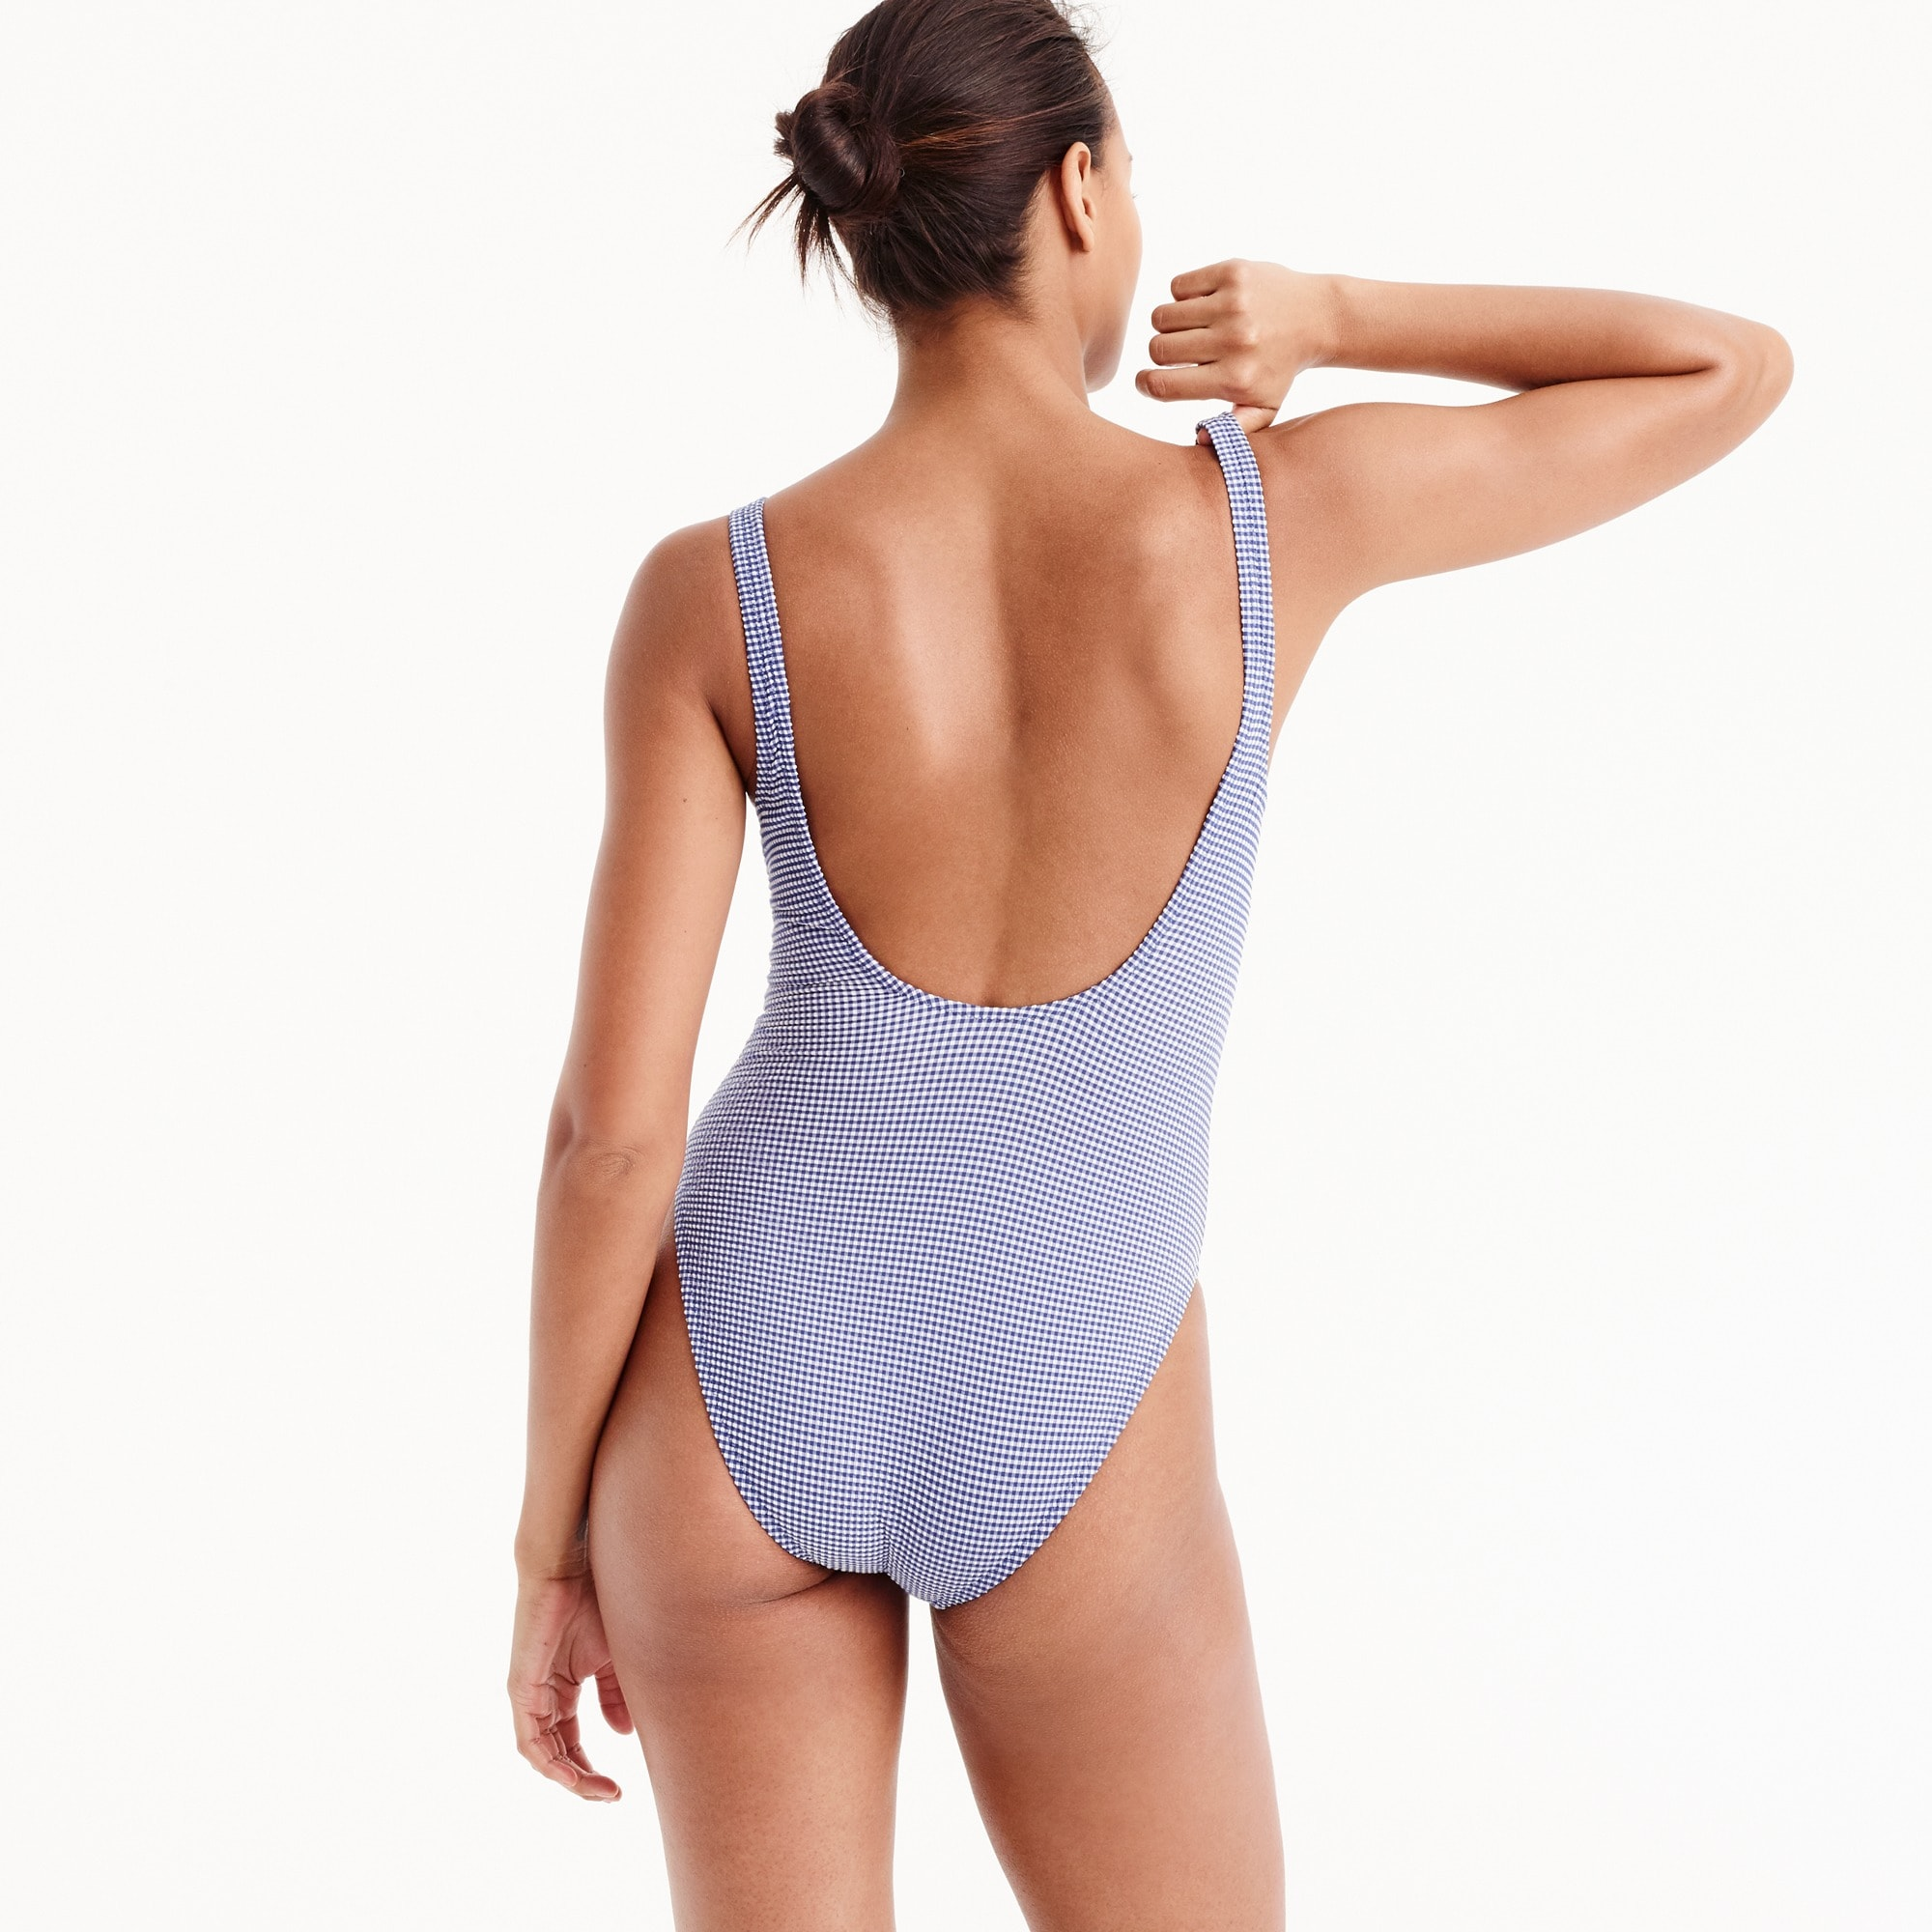 Image 2 for Underwire scoopback one-piece swimsuit in tiny gingham